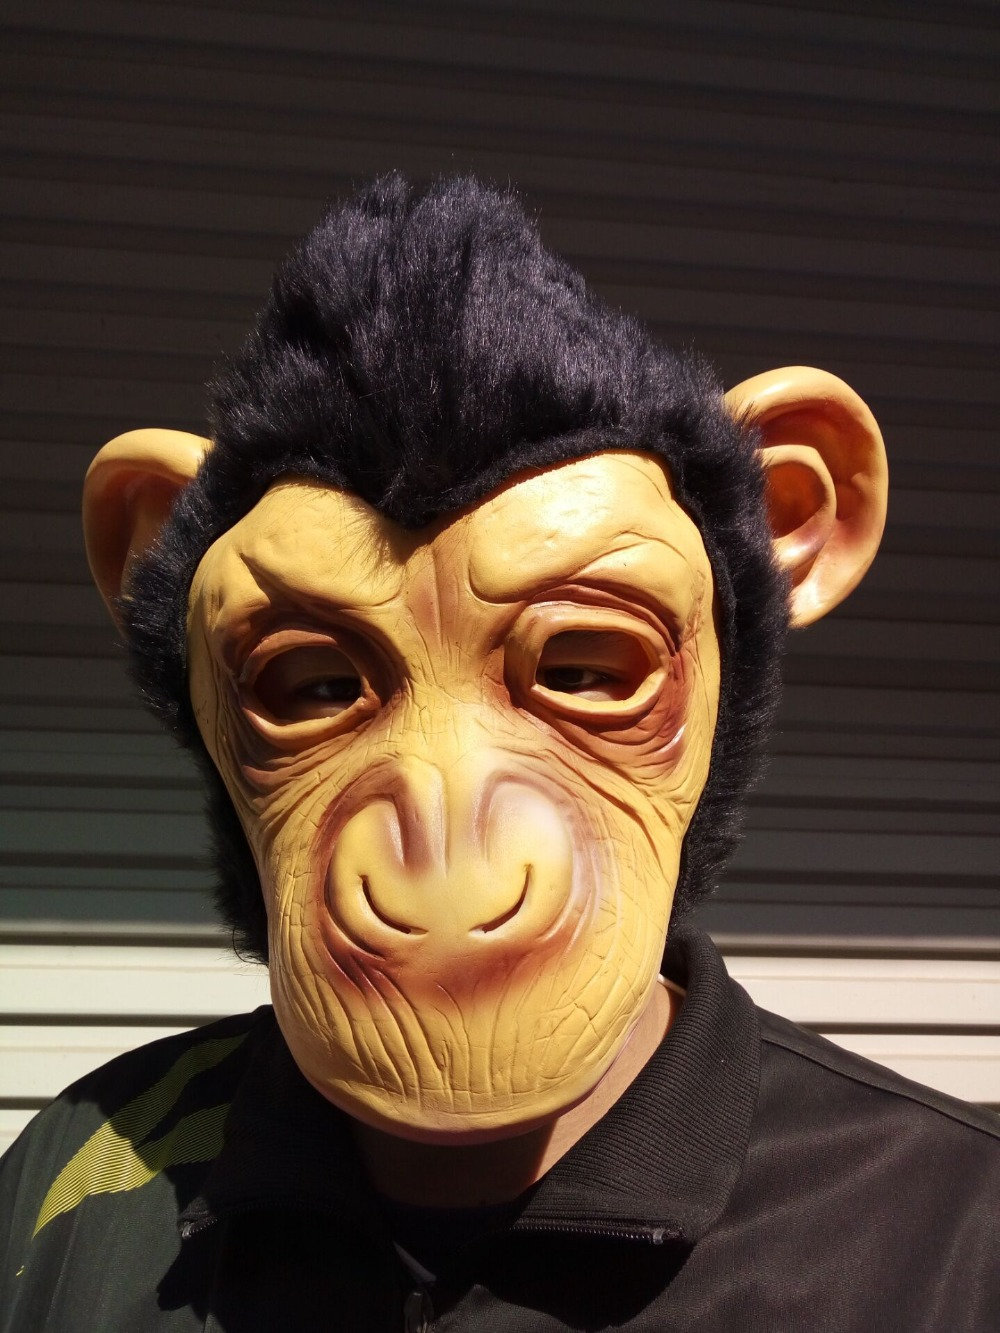 Friendly Latex Full Face Mask Buy One Get One Free Free Shipping King Kong Gorilla Big Ears Monkey Mask Funny Animal Halloween Masquerade Party Eco Kids Costumes & Accessories